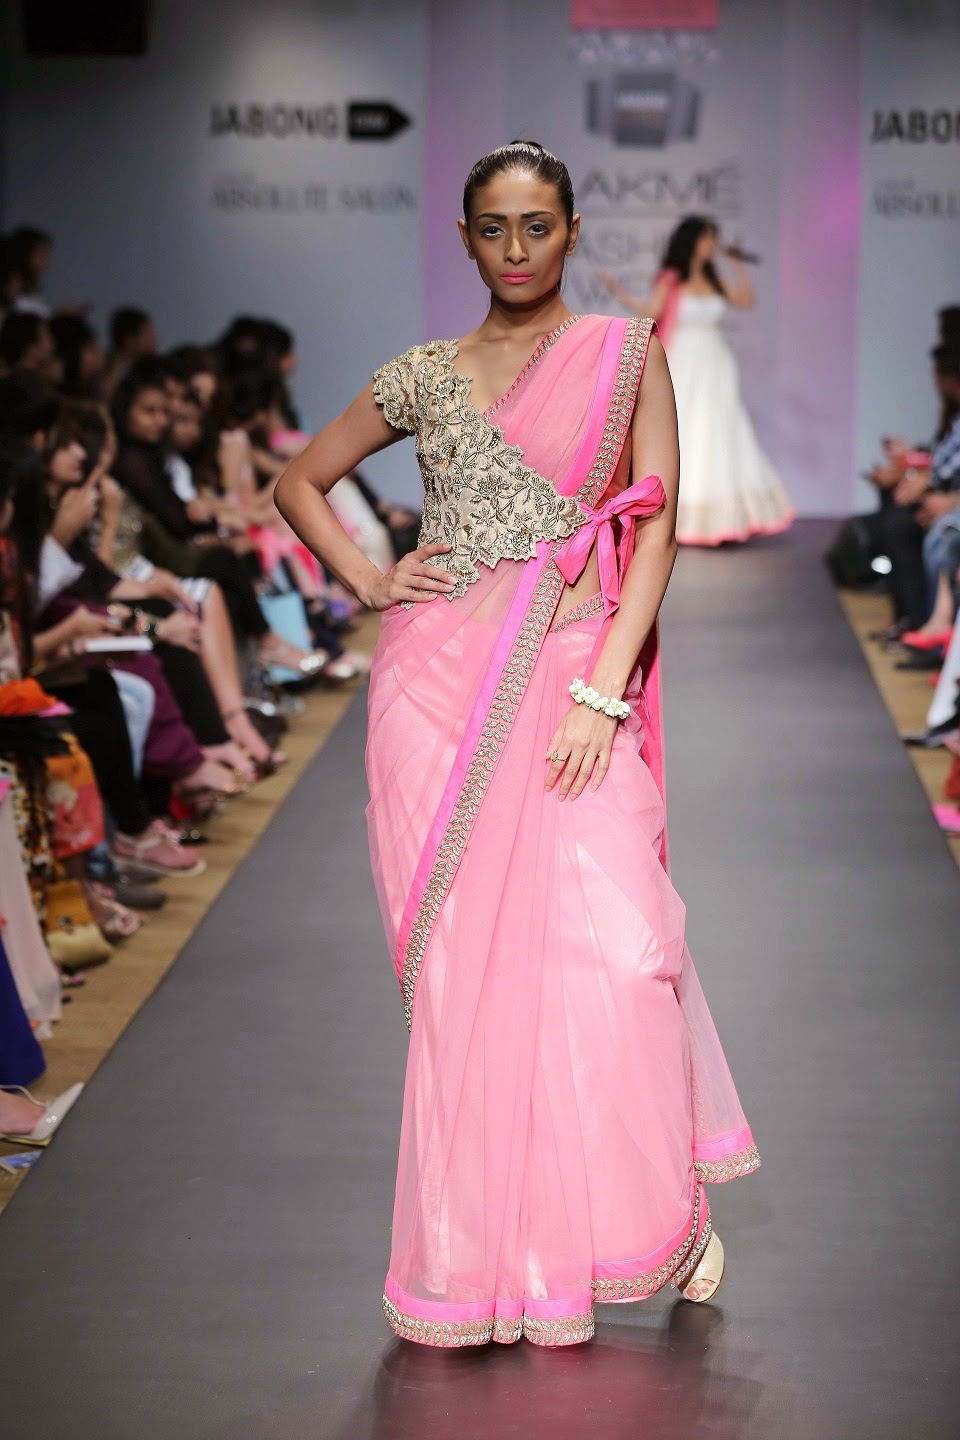 Anushree Reddy's collection titled 'The Tale of a Bow' at Jabong Stage during Lakmé Fashion Week Summer/Resort 2014 was a classic yet contemporary take on Indian fashion.  The show started with the melodious voice of popular singer, Shibani Kashyap who looked gorgeous in a pink accented white salwar with gold and silver appliqués.